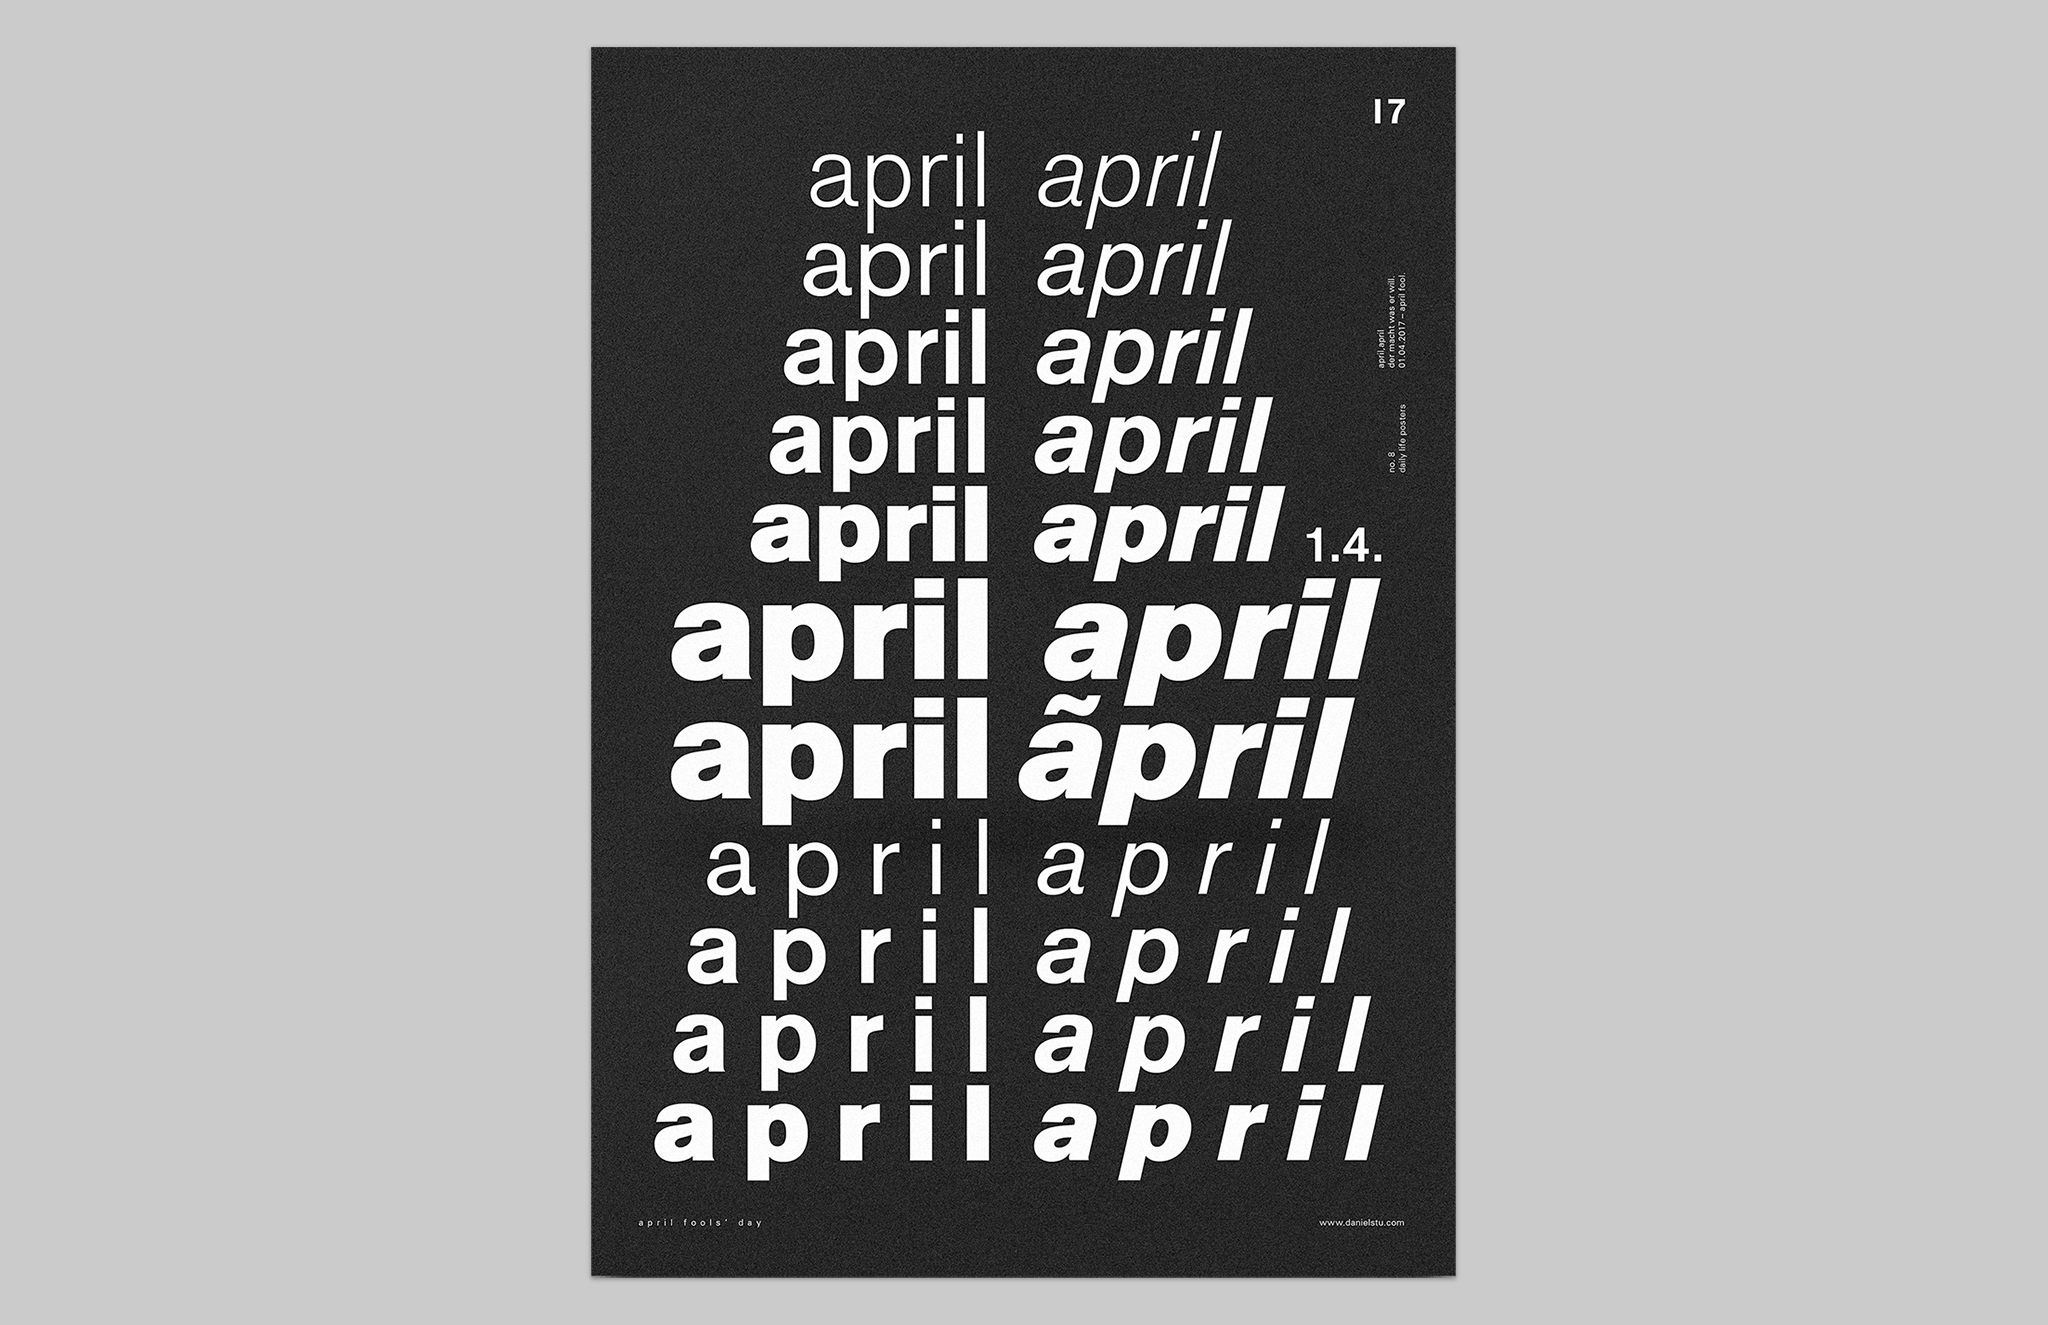 Daniel-Stuhlpfarrer_Visual-Communication_Graphic-Design_Poster_April-April_Overview